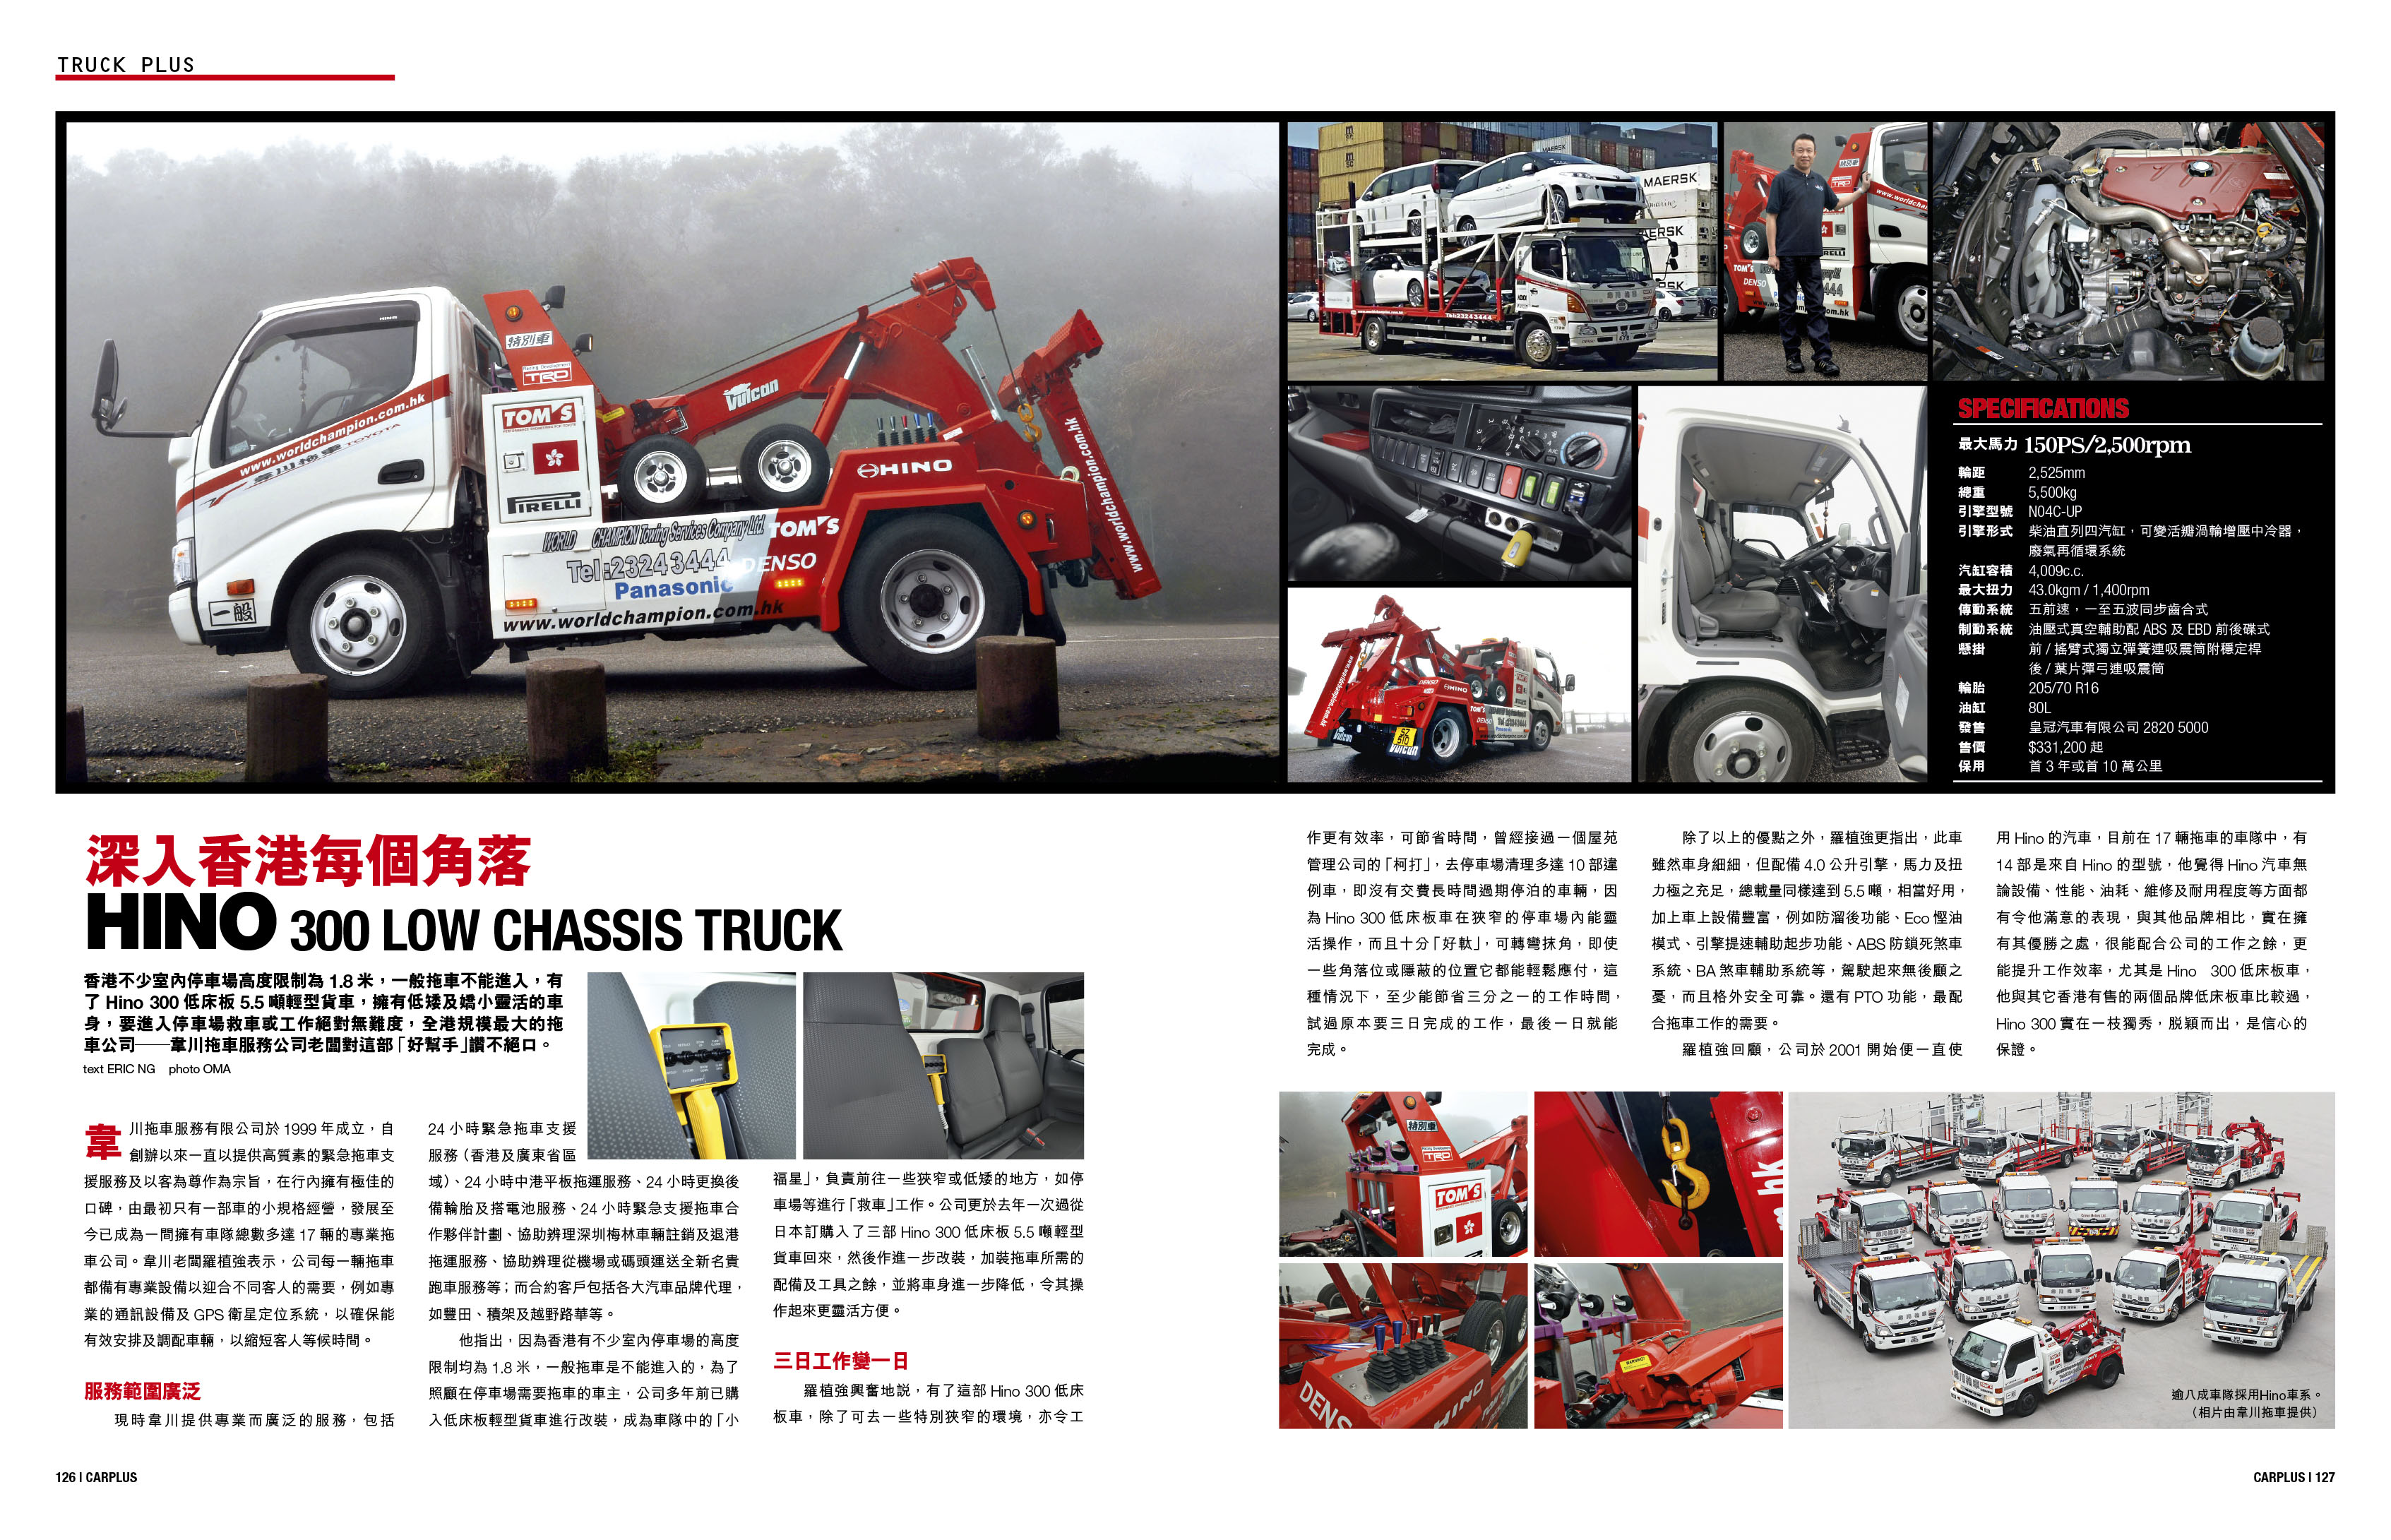 Going Into All Corners in HK - Hino 300 Low Chassis LGV